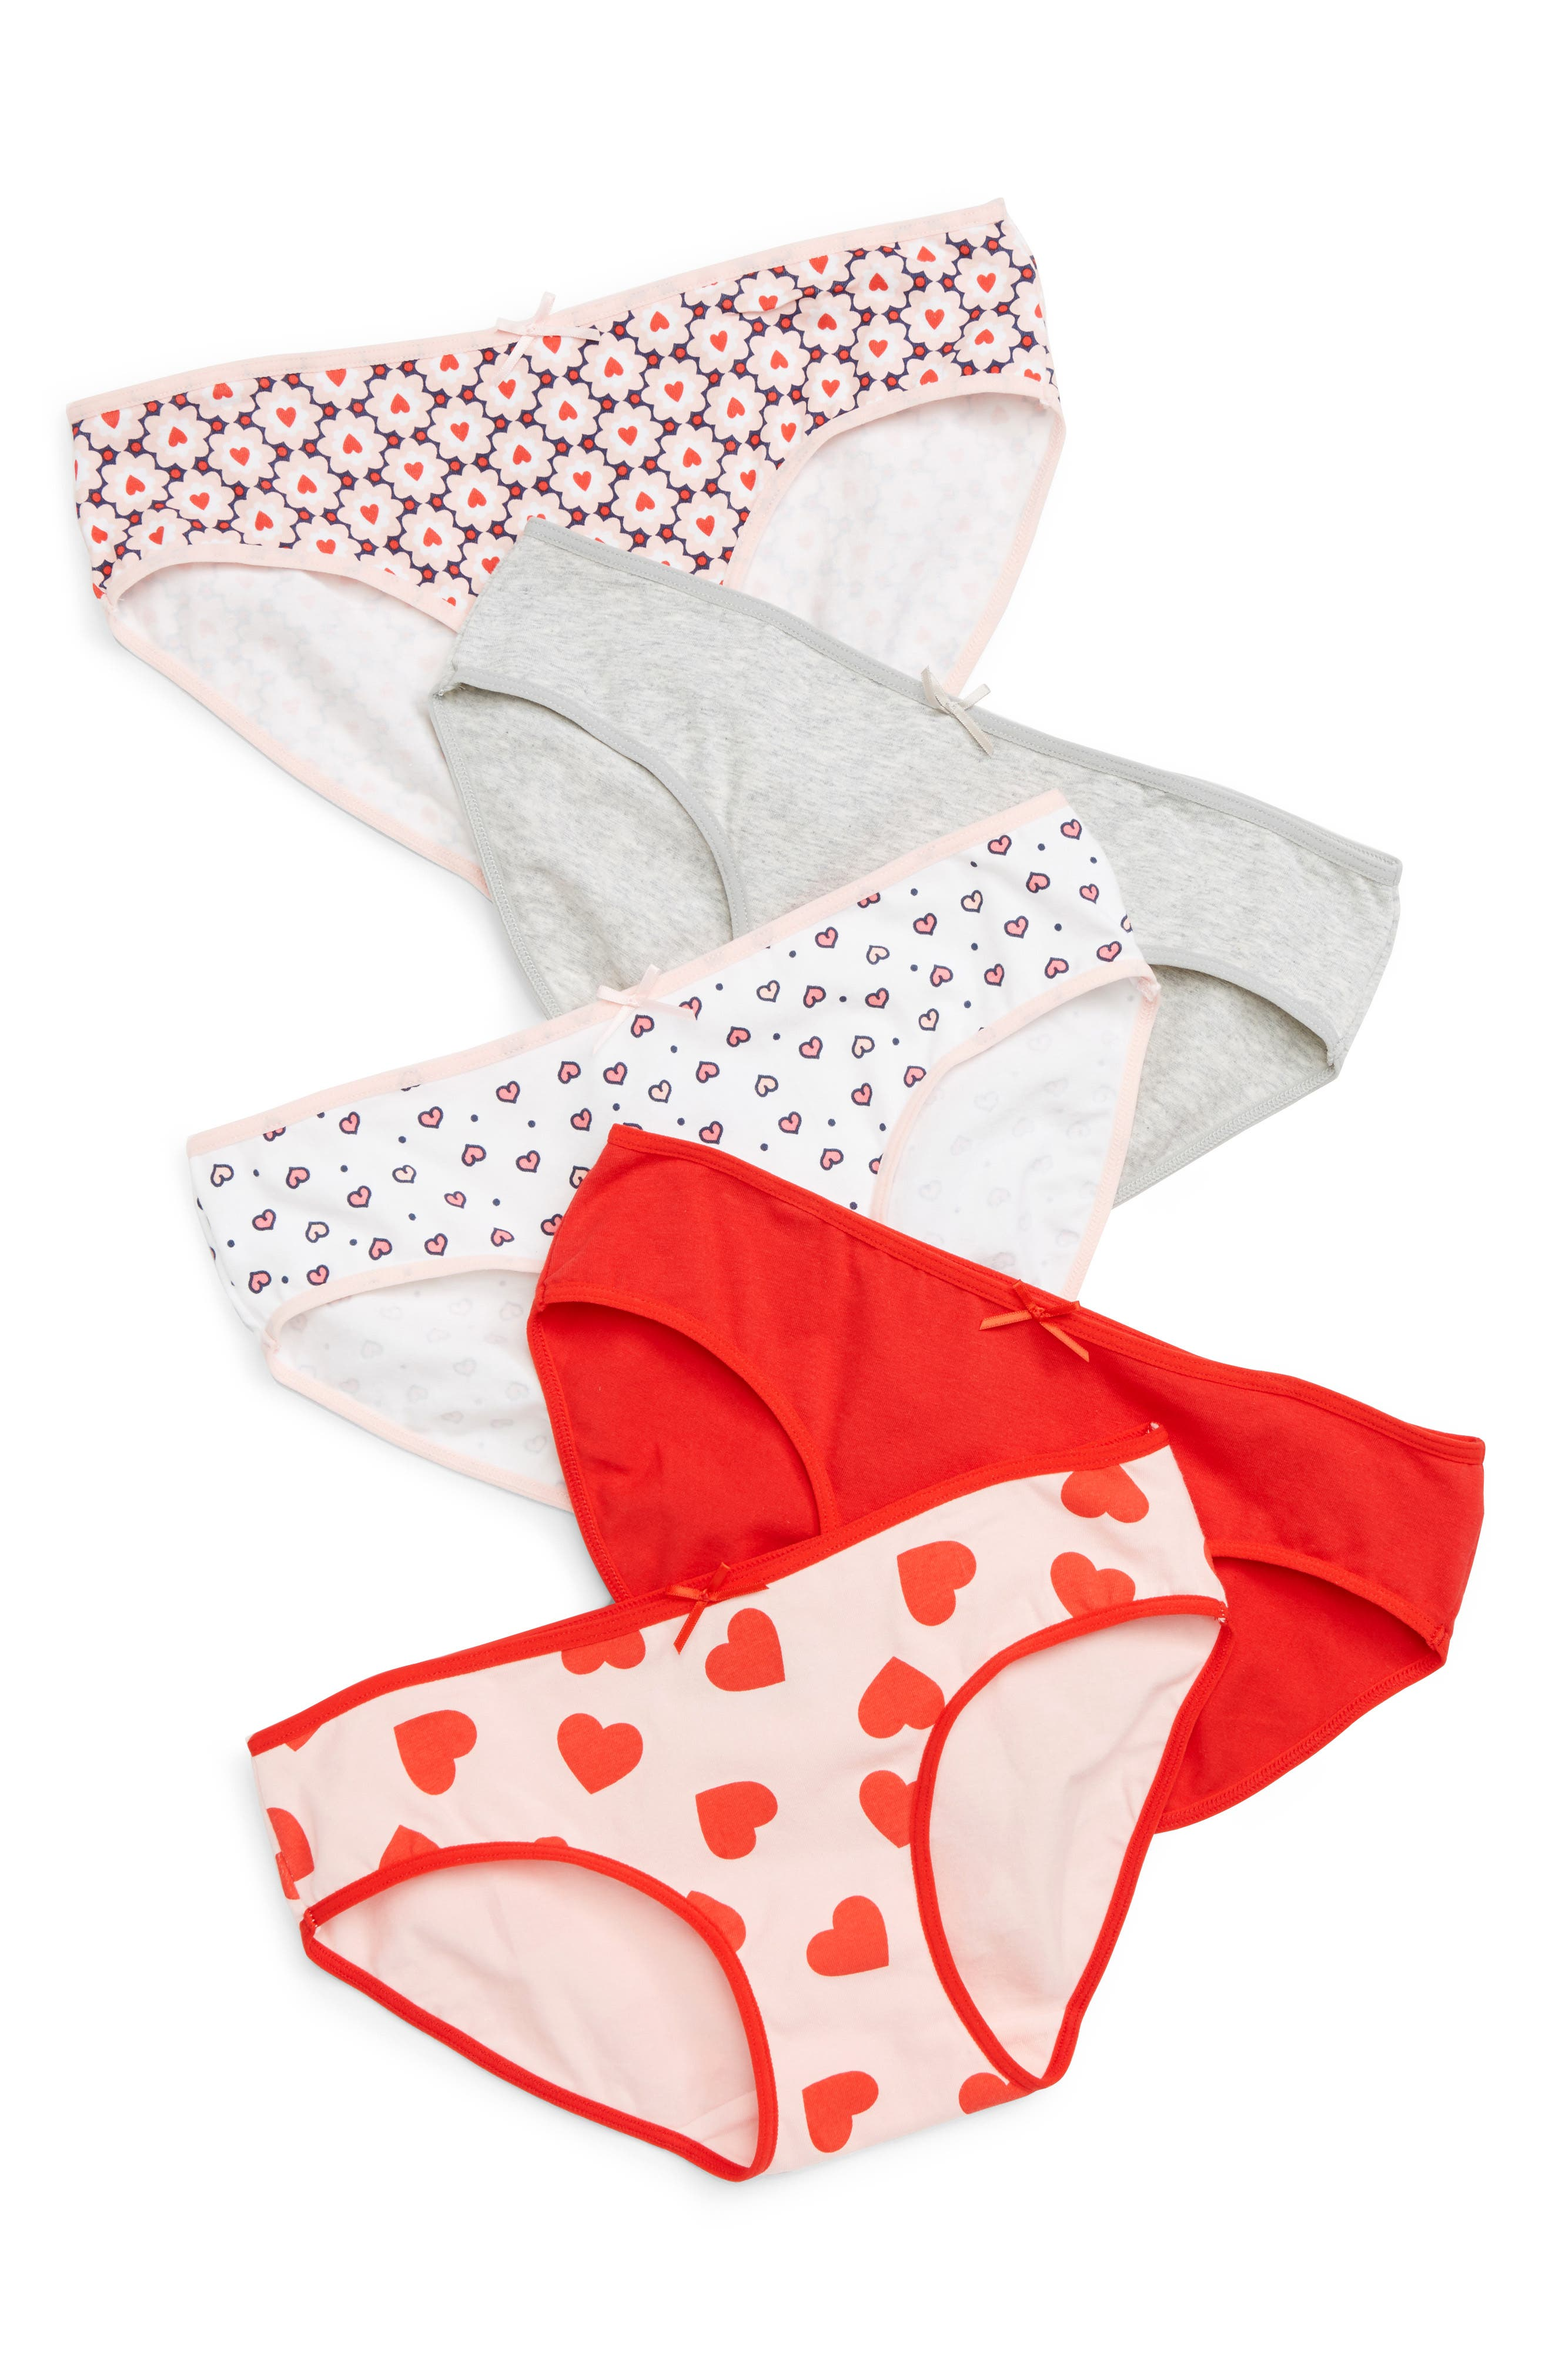 5-Pack Hipster Briefs,                         Main,                         color, MODERN HEART PACK